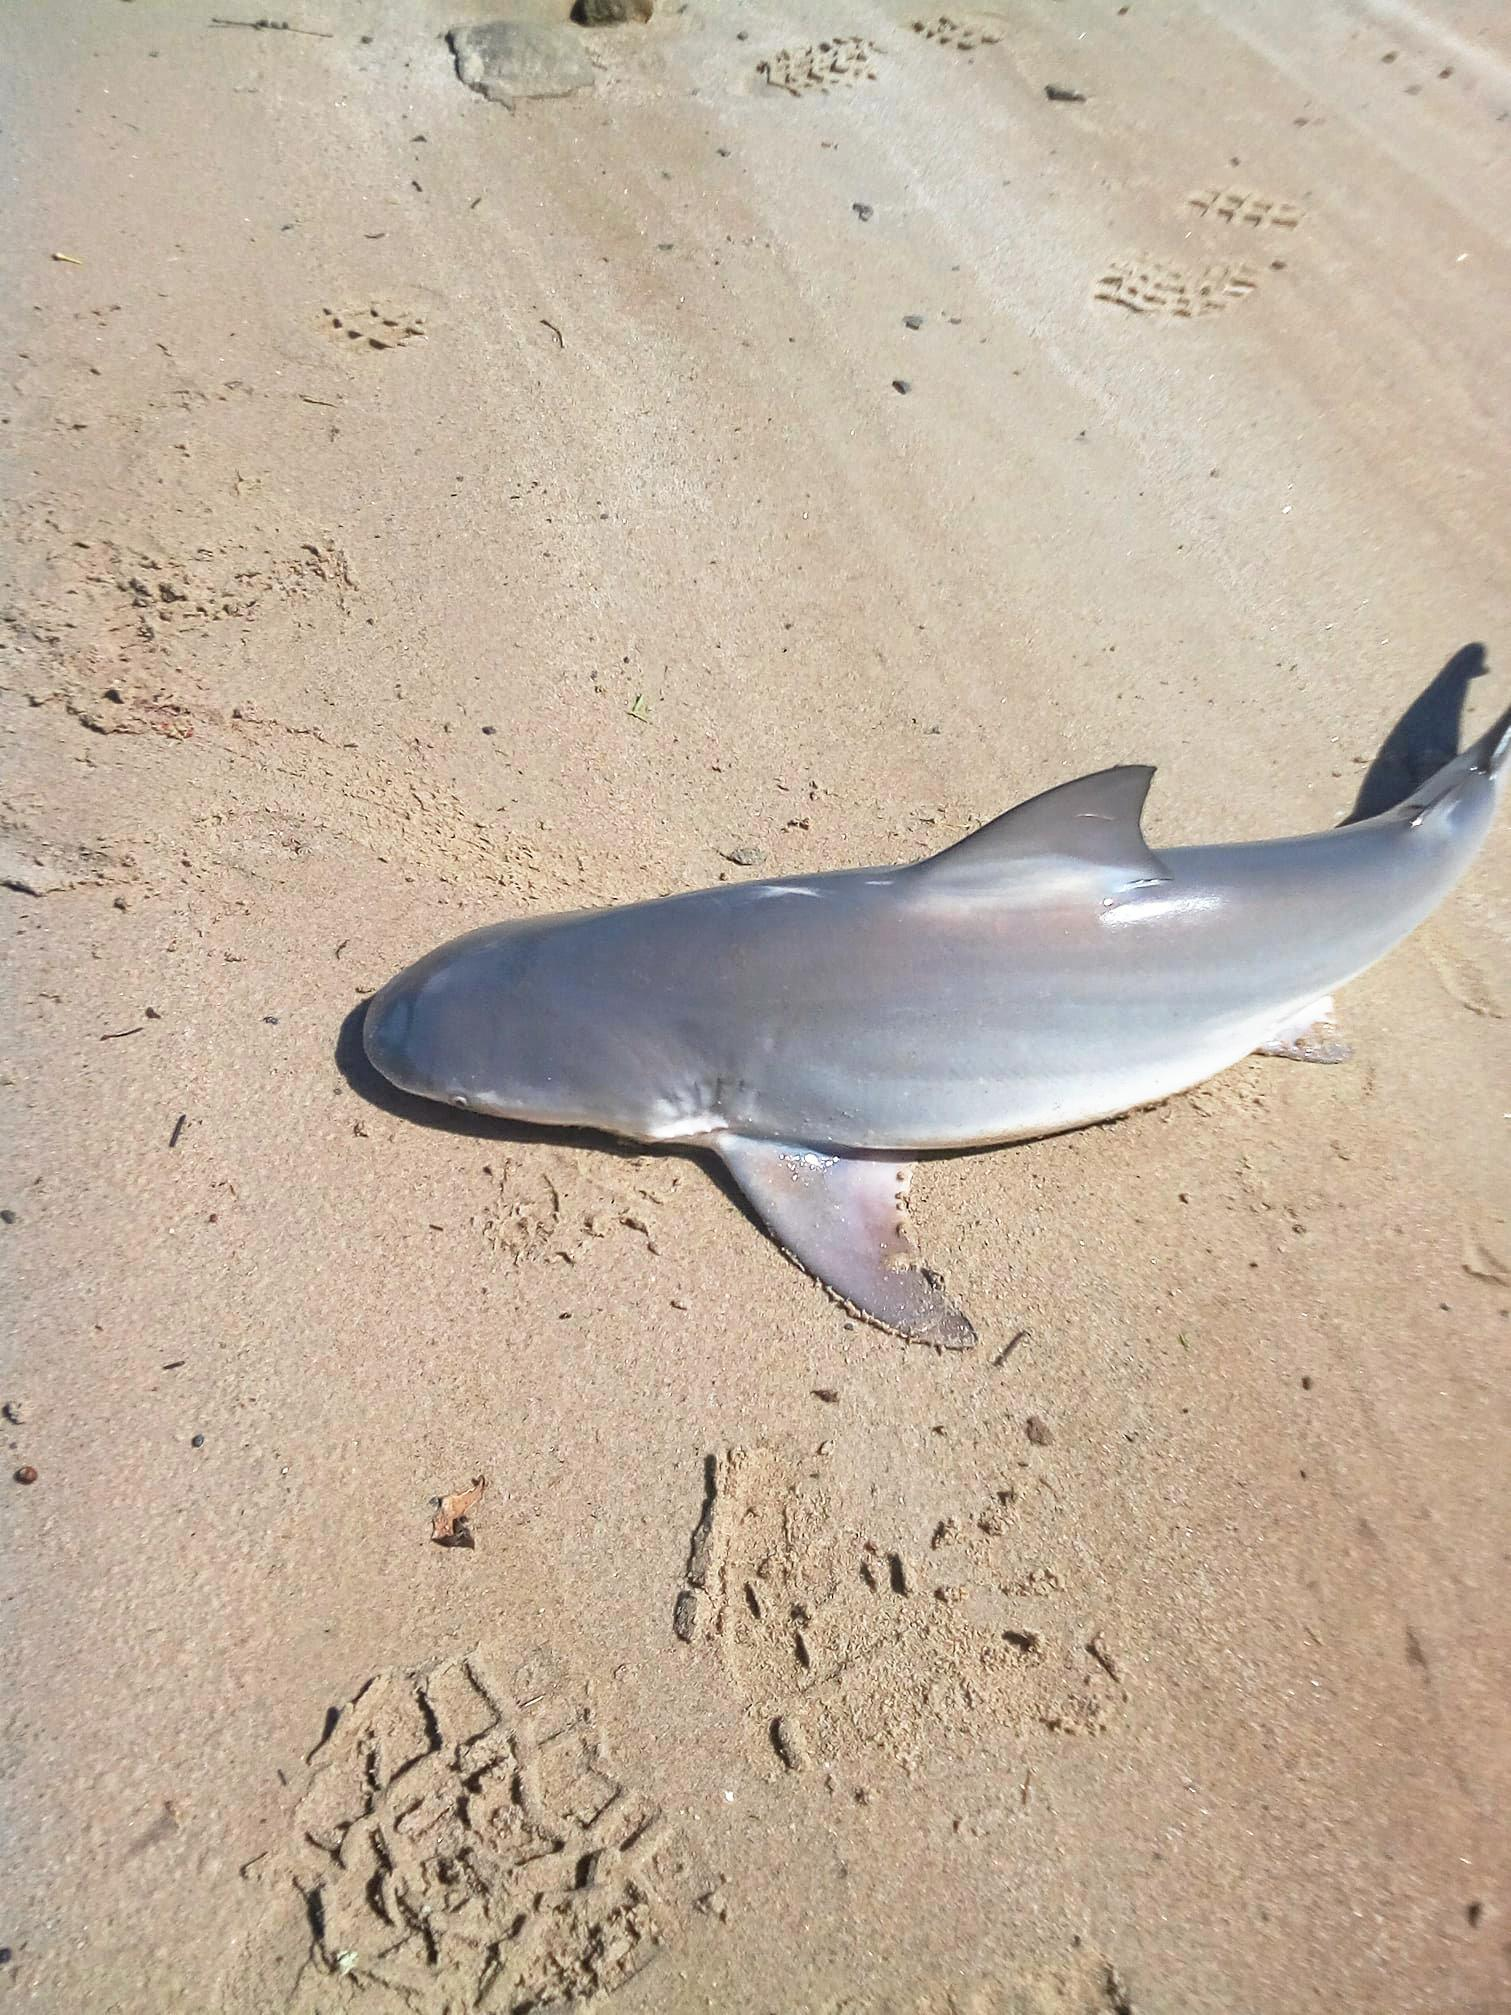 Julie Creed posted this photo of a shark found in the Richmond River at Coraki.